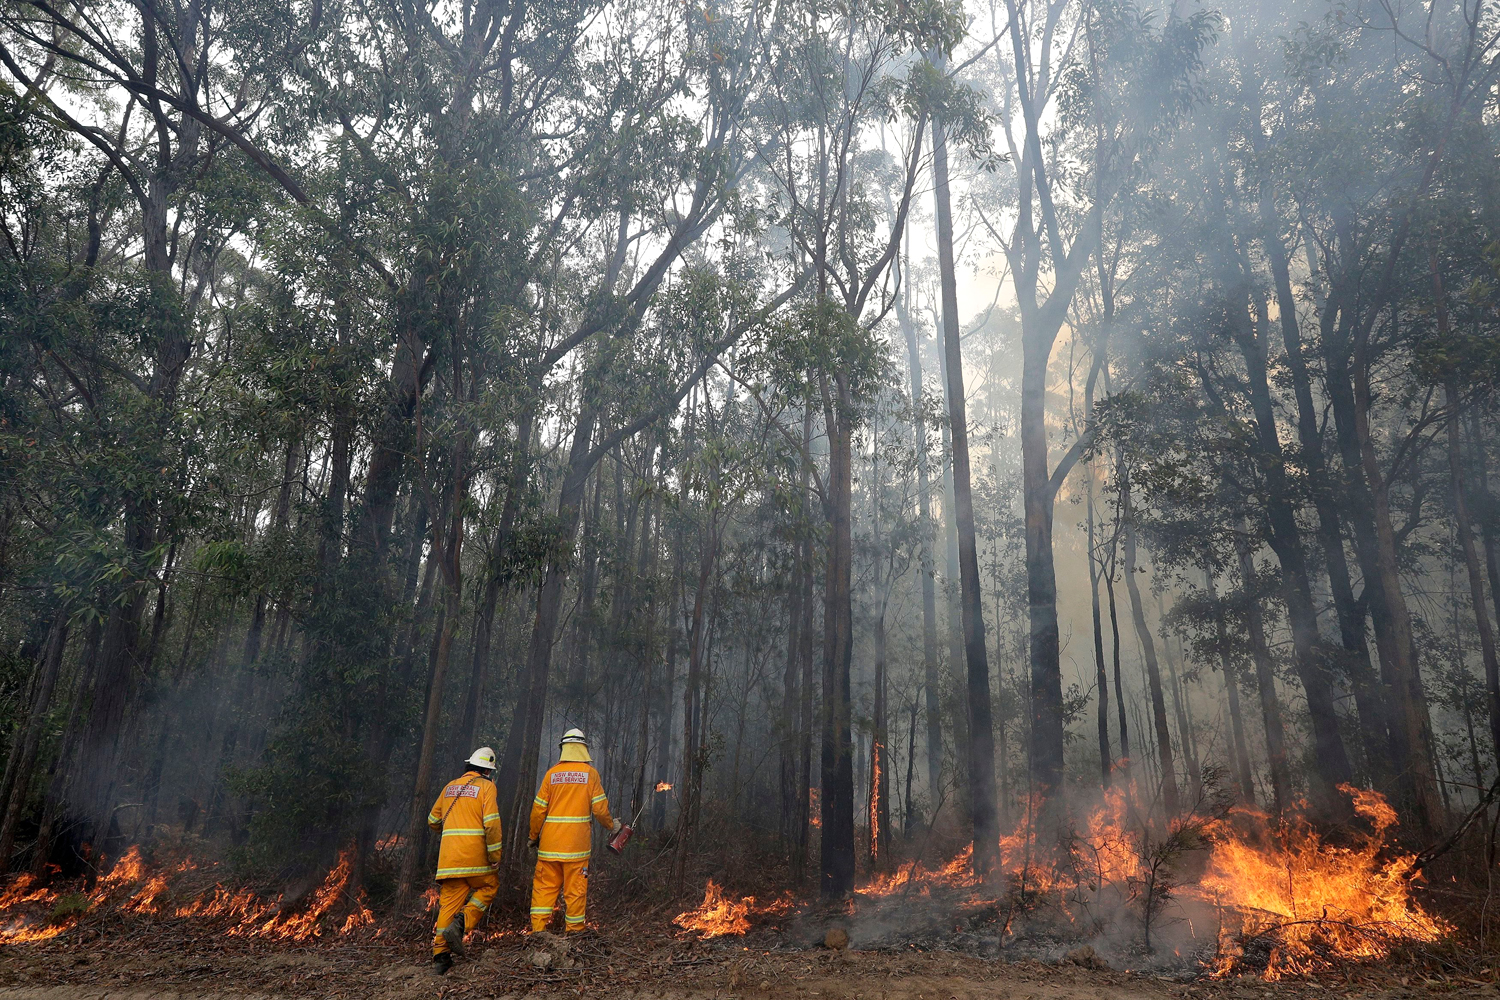 Firefighters manage a controlled burn near Tomerong